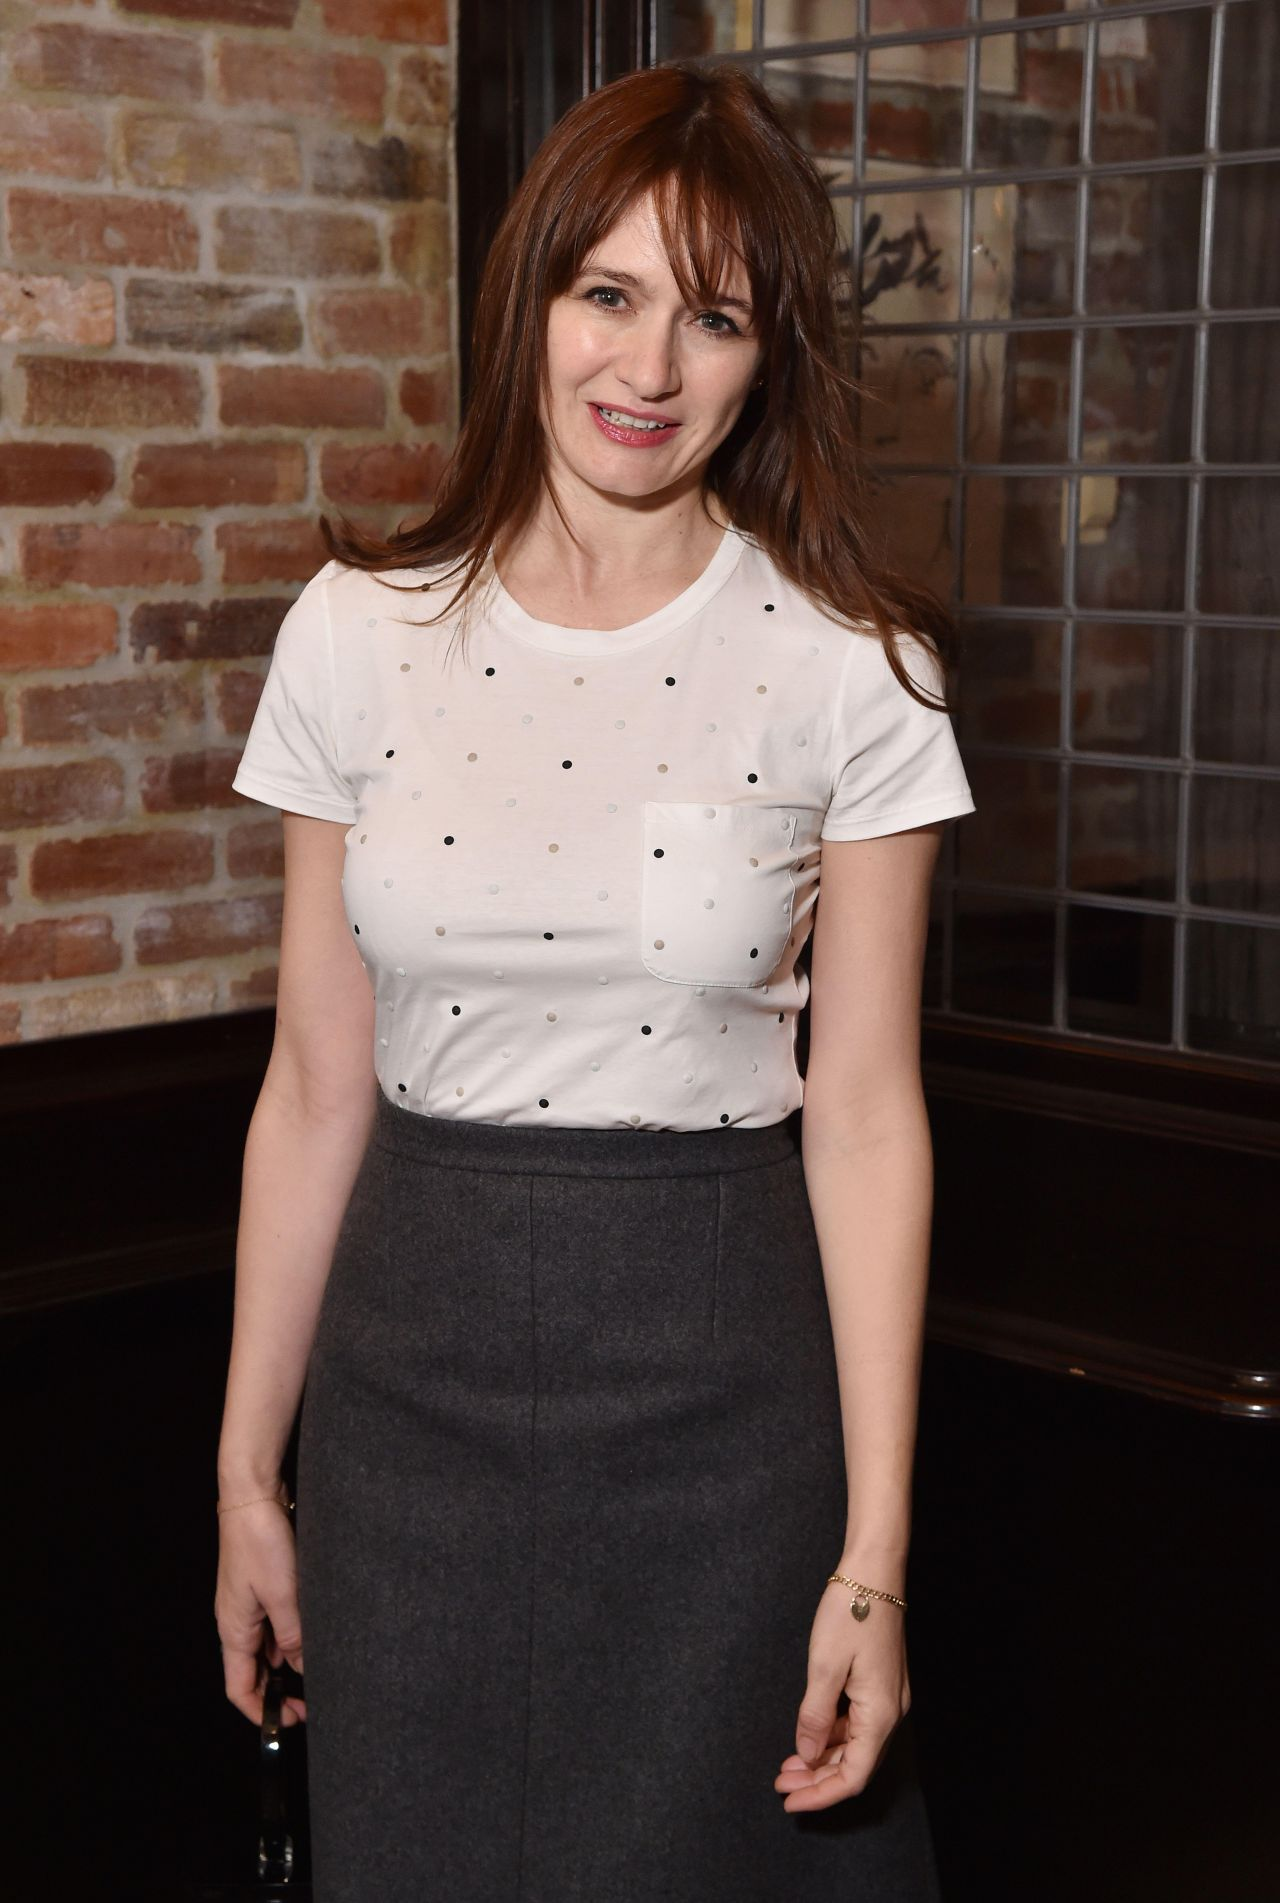 Emily mortimer the s dictionary scandalplanetcom 10